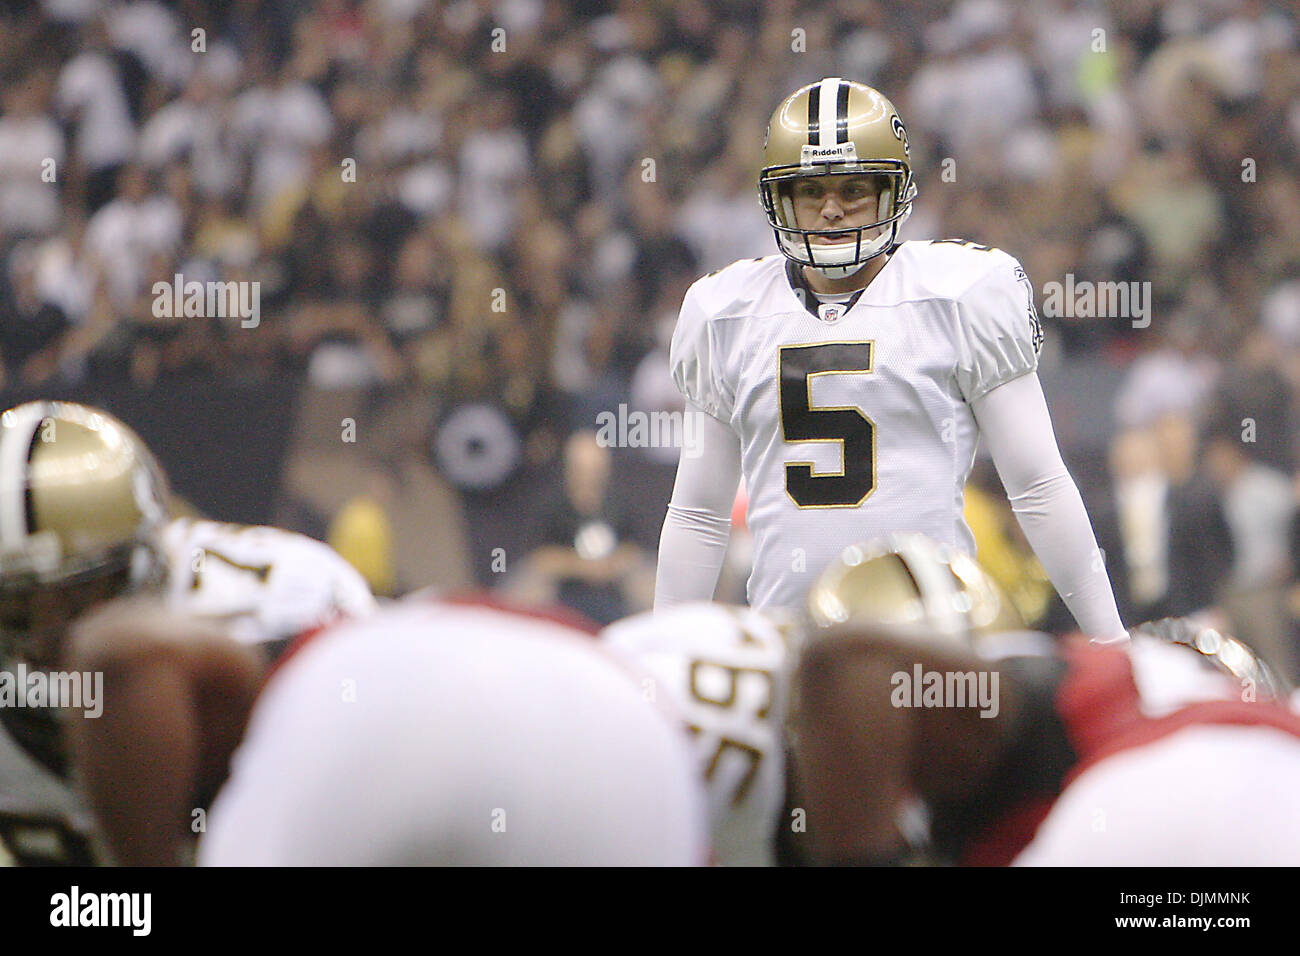 Wholesale New Orleans Saints Kicker Garrett Stock Photos & New Orleans Saints  supplier